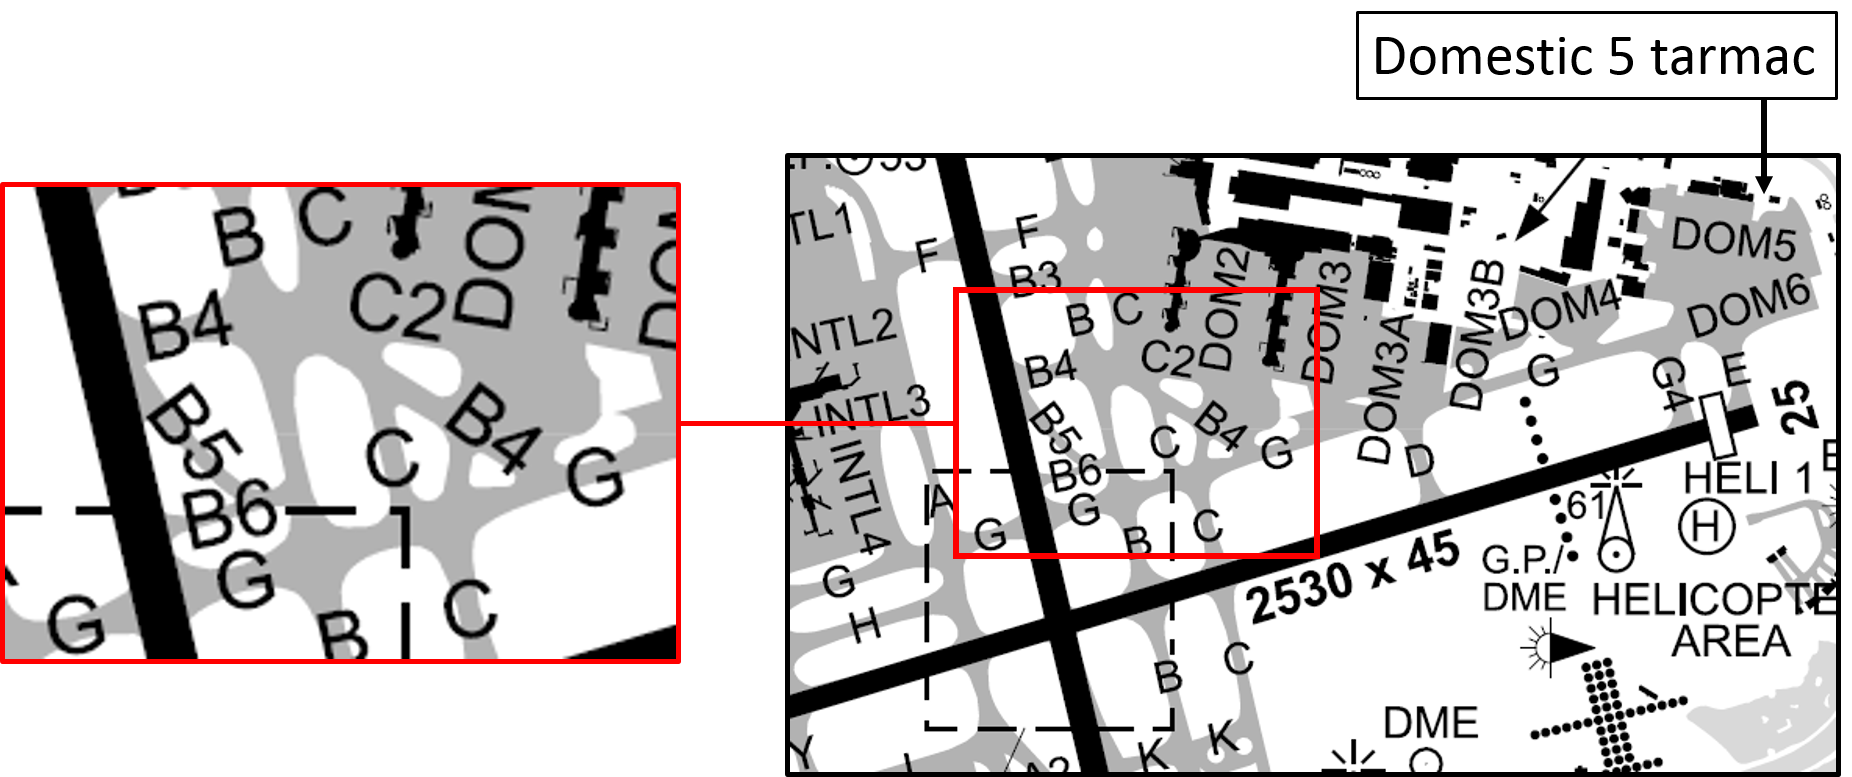 Figure 1: Excerpt from aerodrome chart showing the location of the relevant taxiways